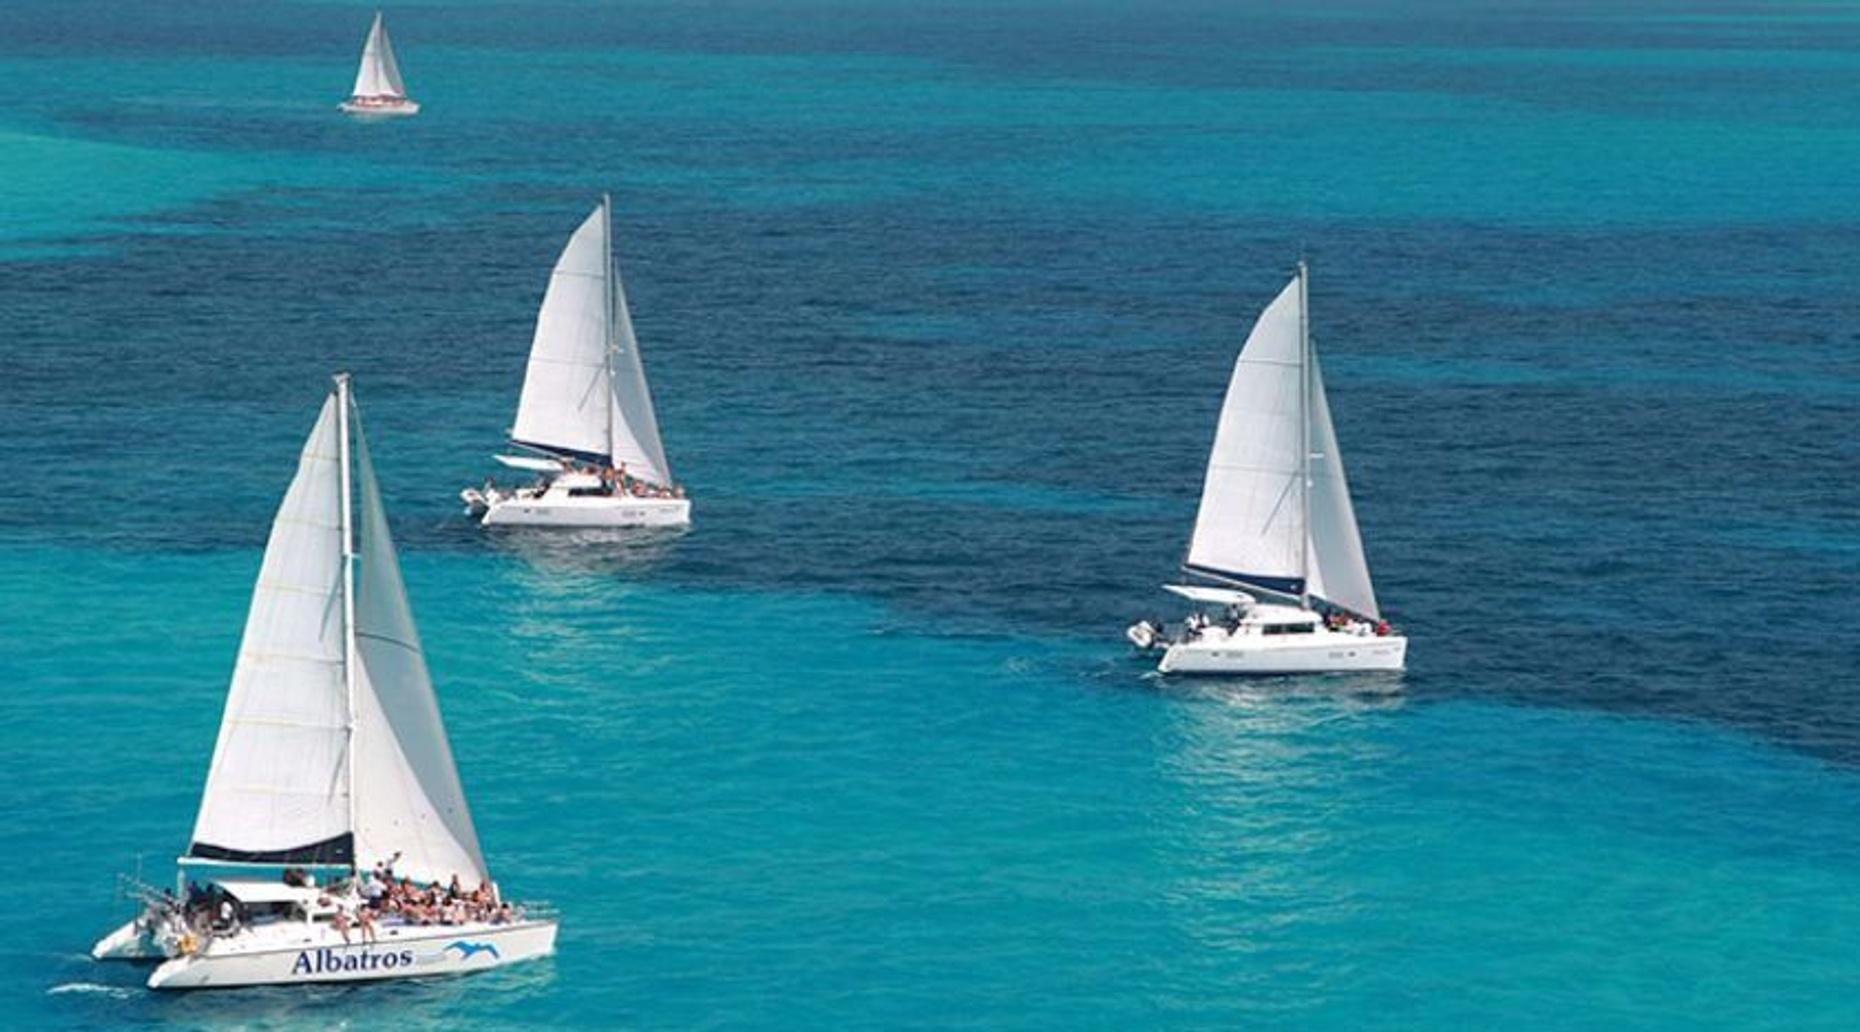 Half-Day Sailing Adventure on the Mar to Isla Mujeres